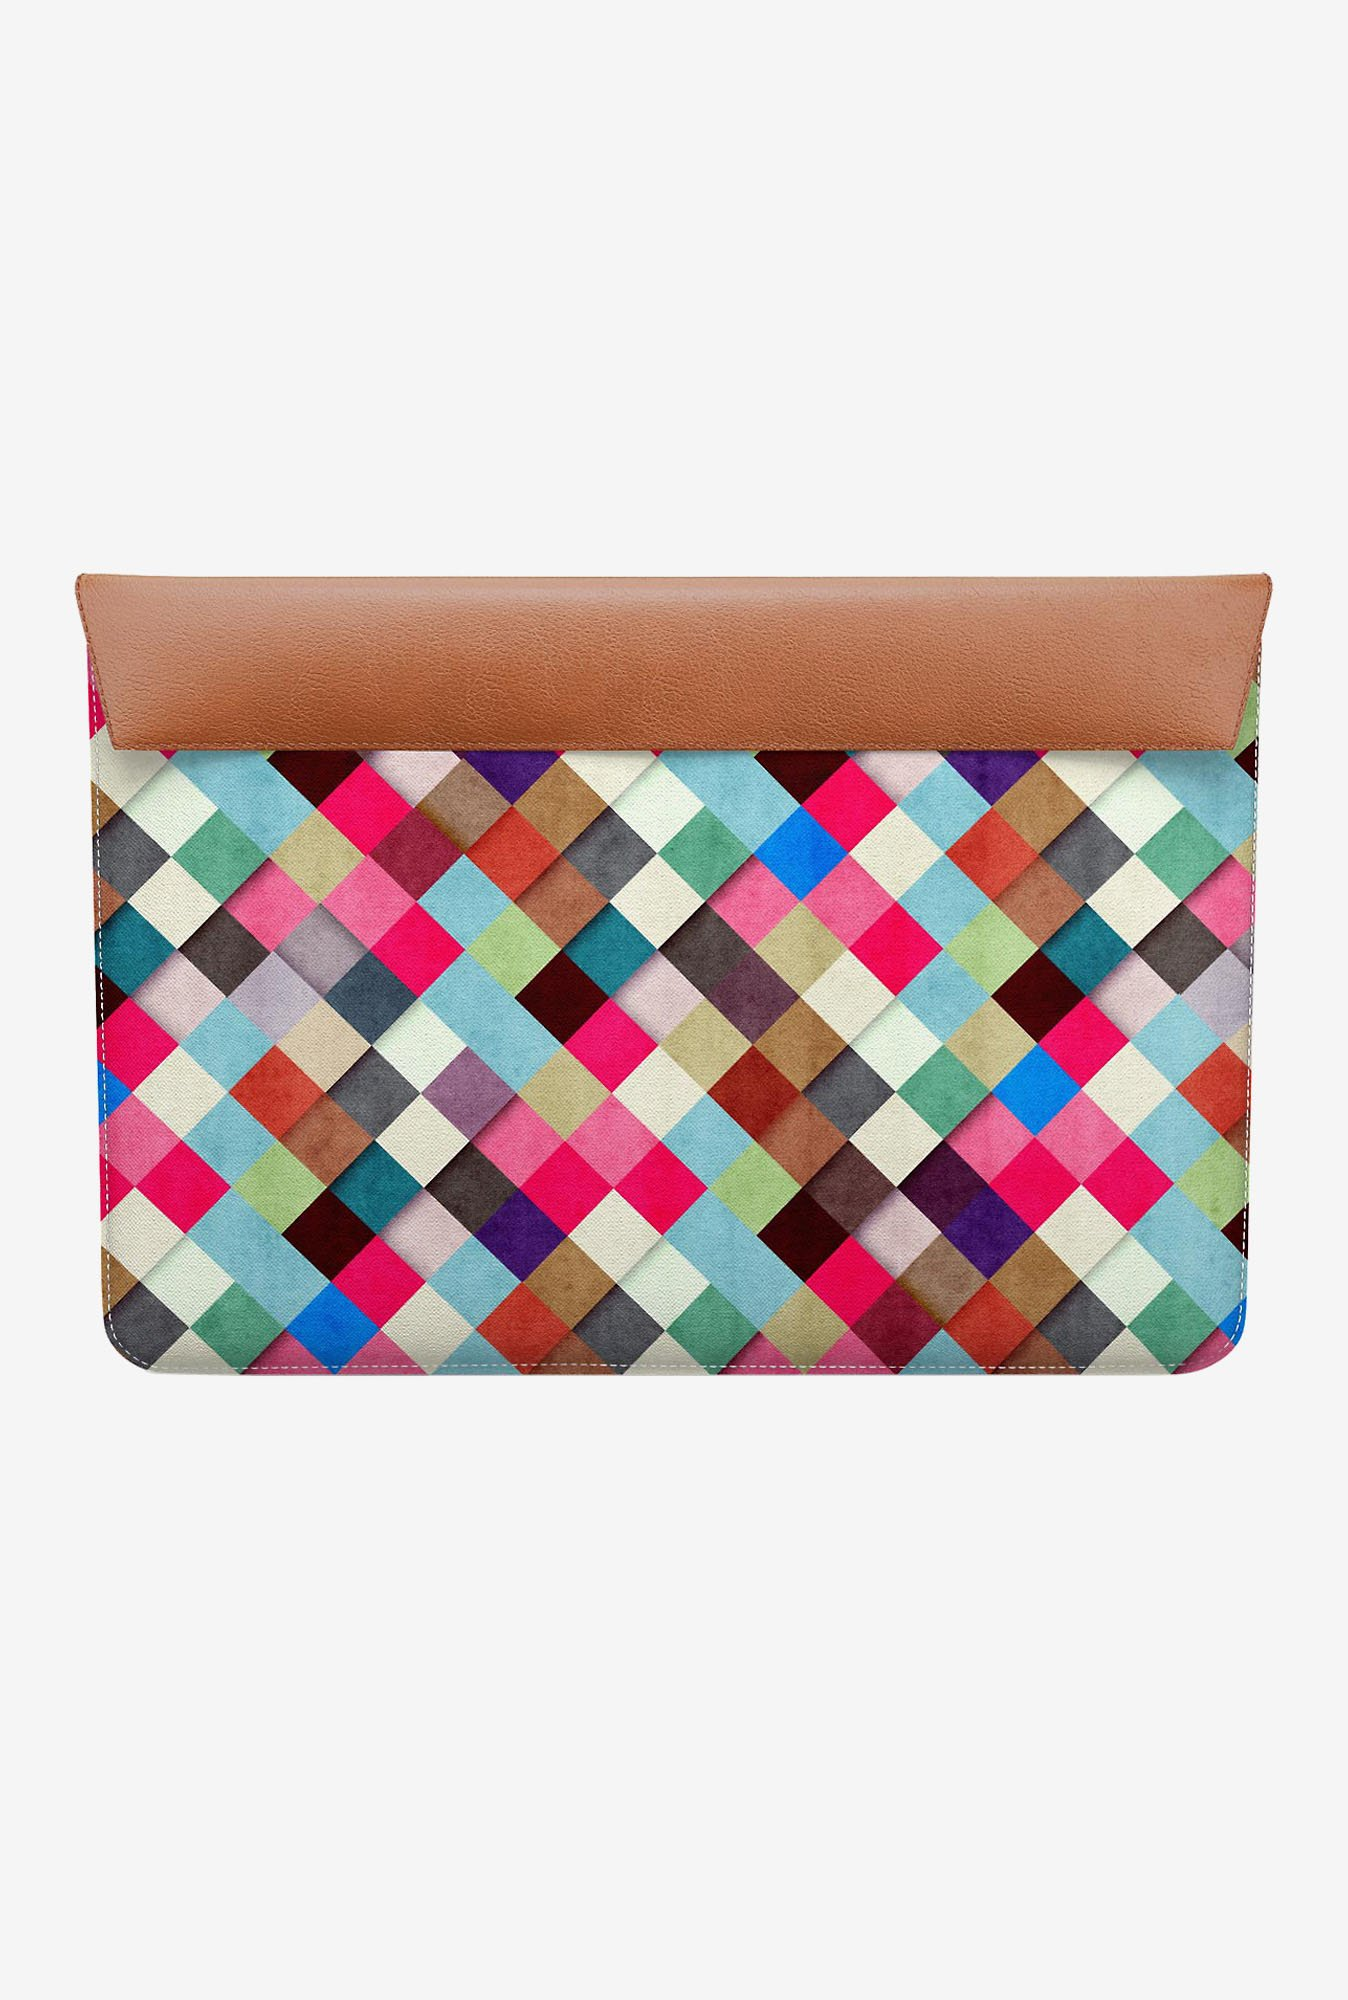 DailyObjects UbriK checker MacBook Pro 13 Envelope Sleeve